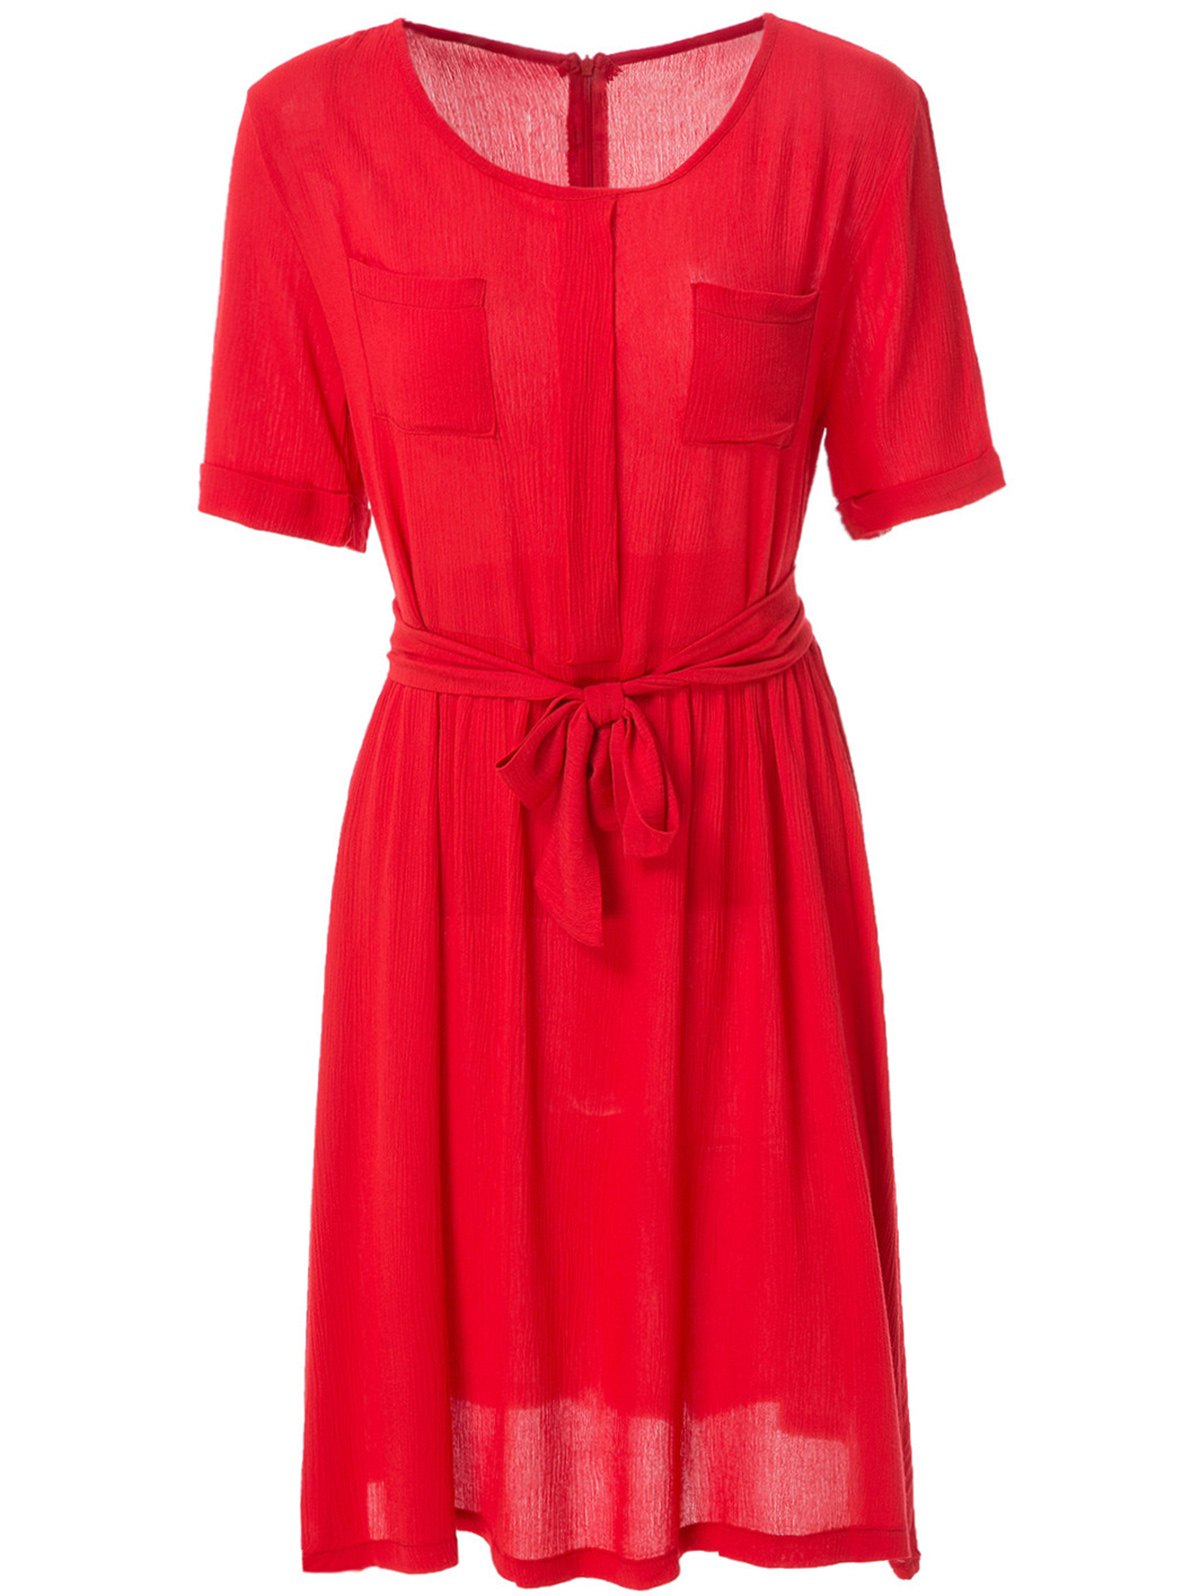 Fashionable Jewel Neck Solid Color Elastic Waist Belt Short Sleeve Dress For Women - RED S